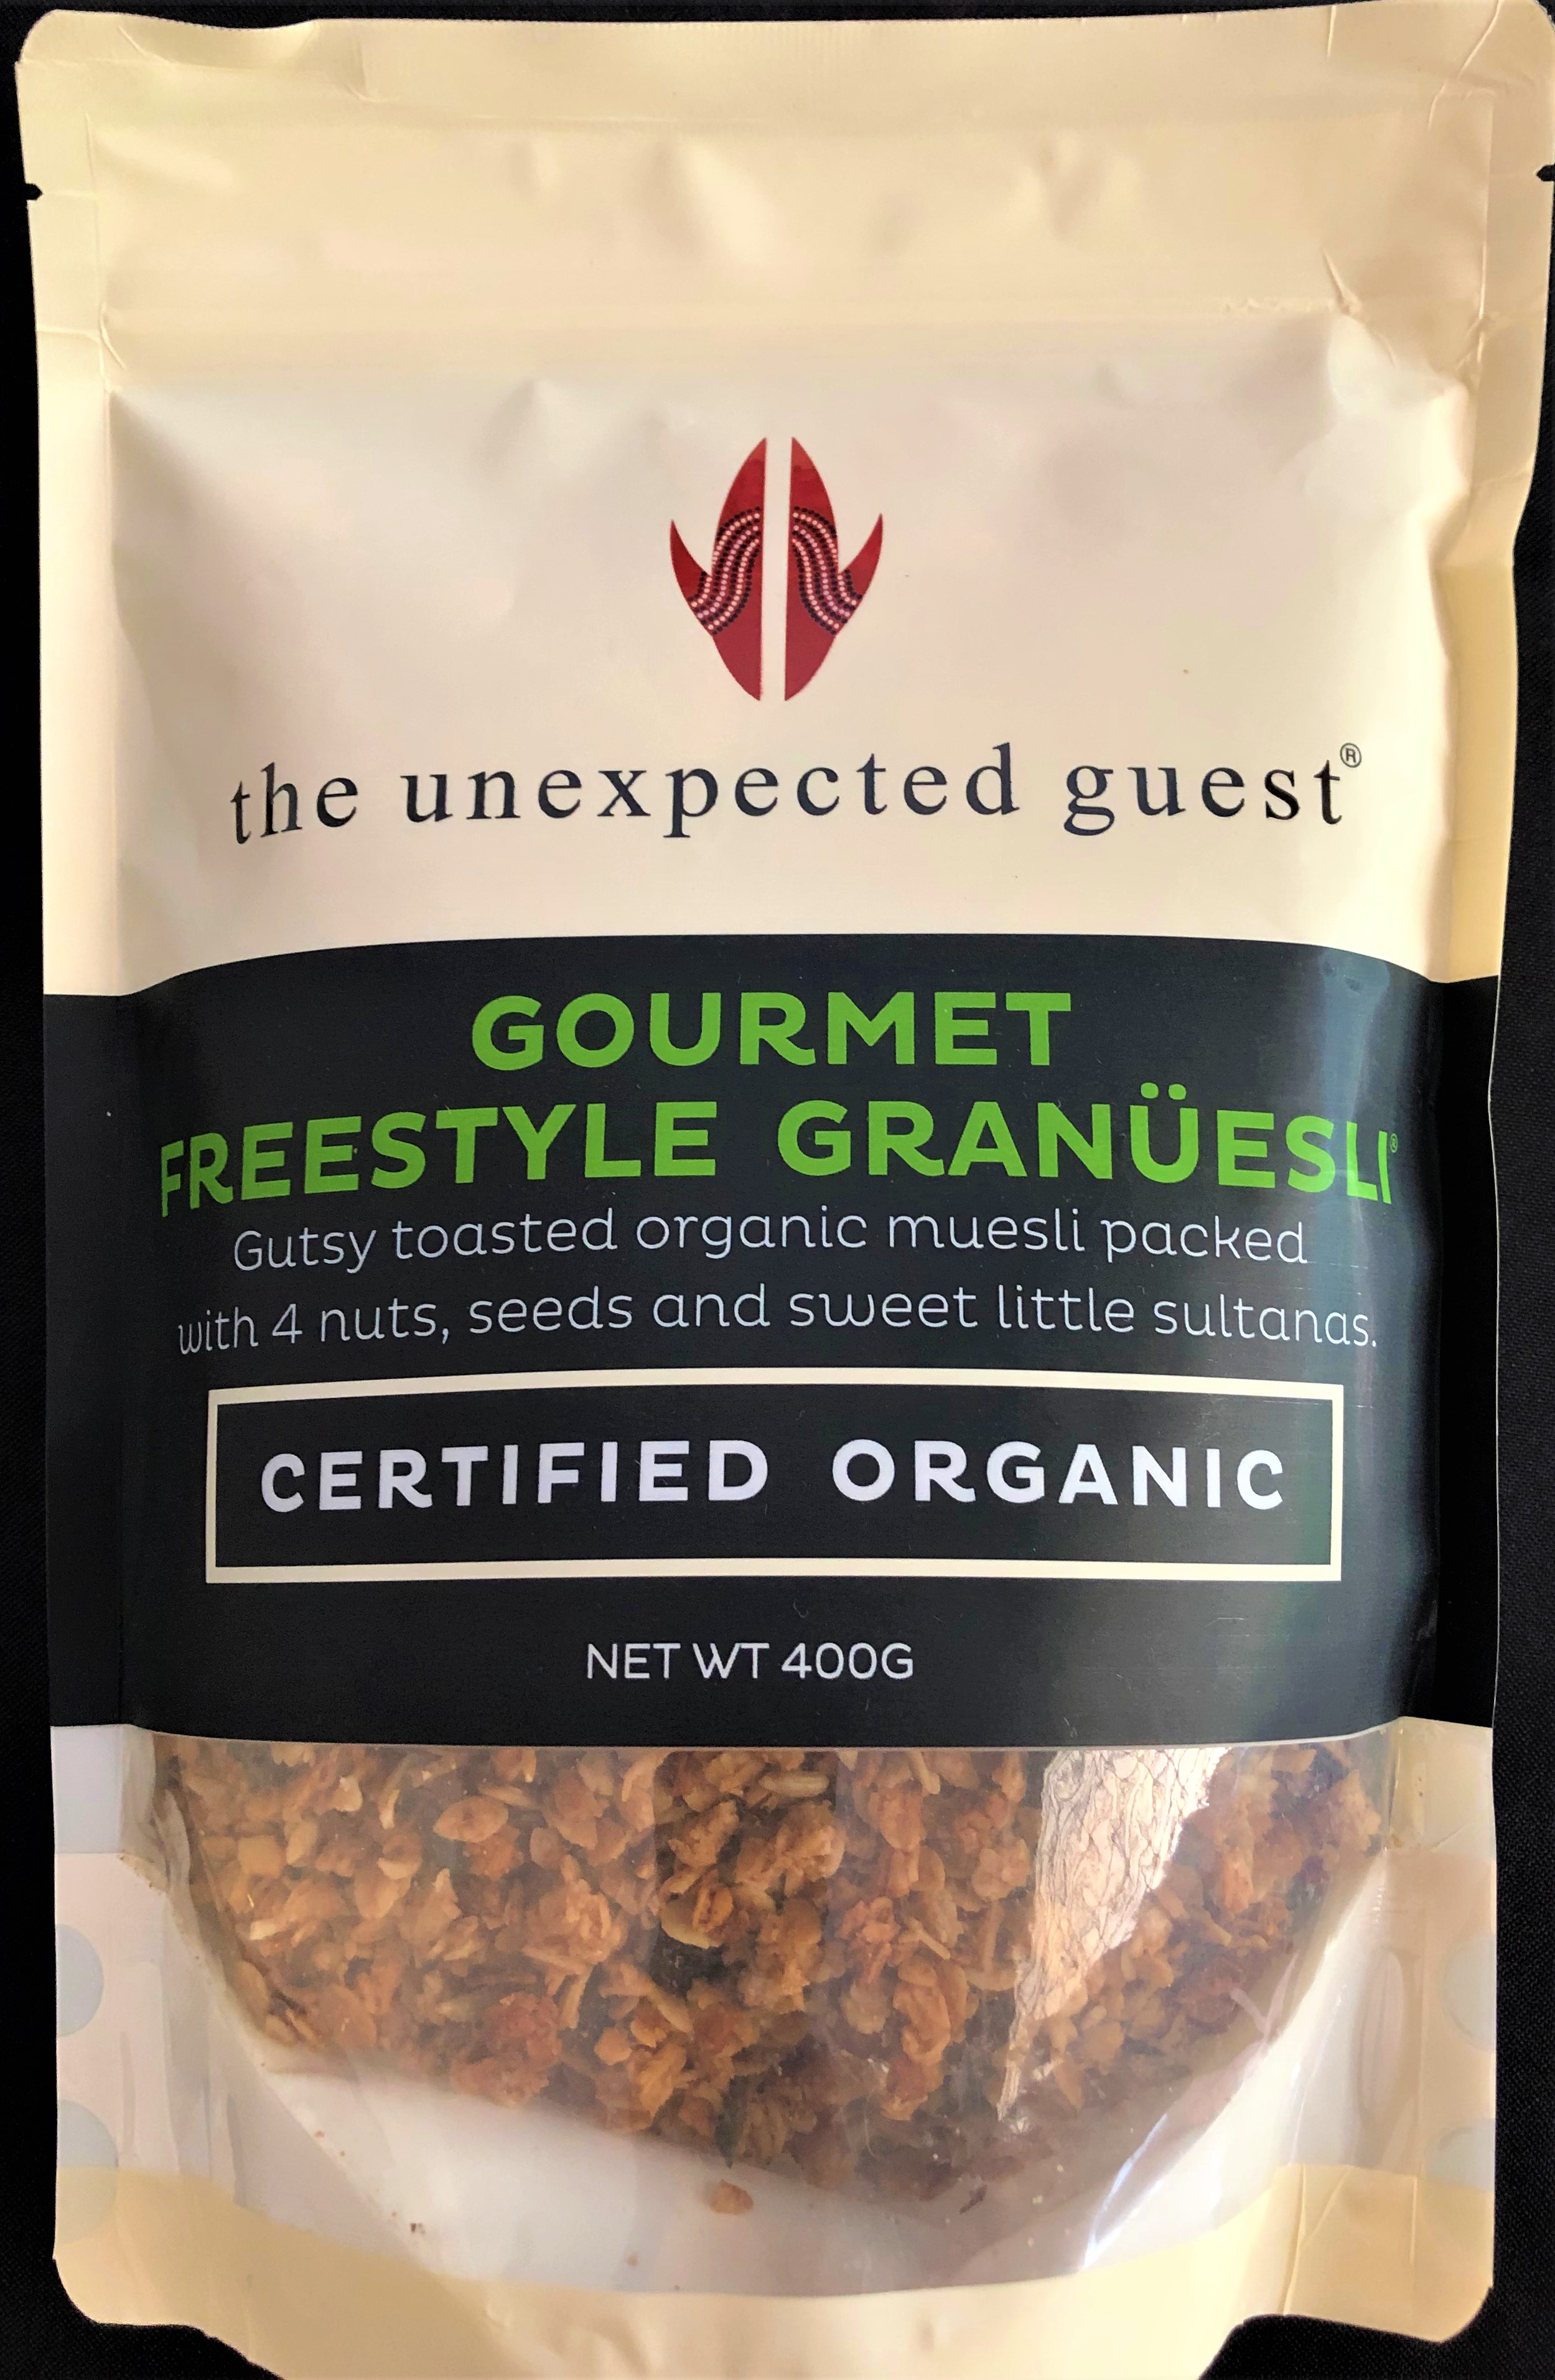 Gourmet Freestyle Granuesli - Gutsy toasted organic muesli packed with 4 nuts, seeds and sweet little sultanas